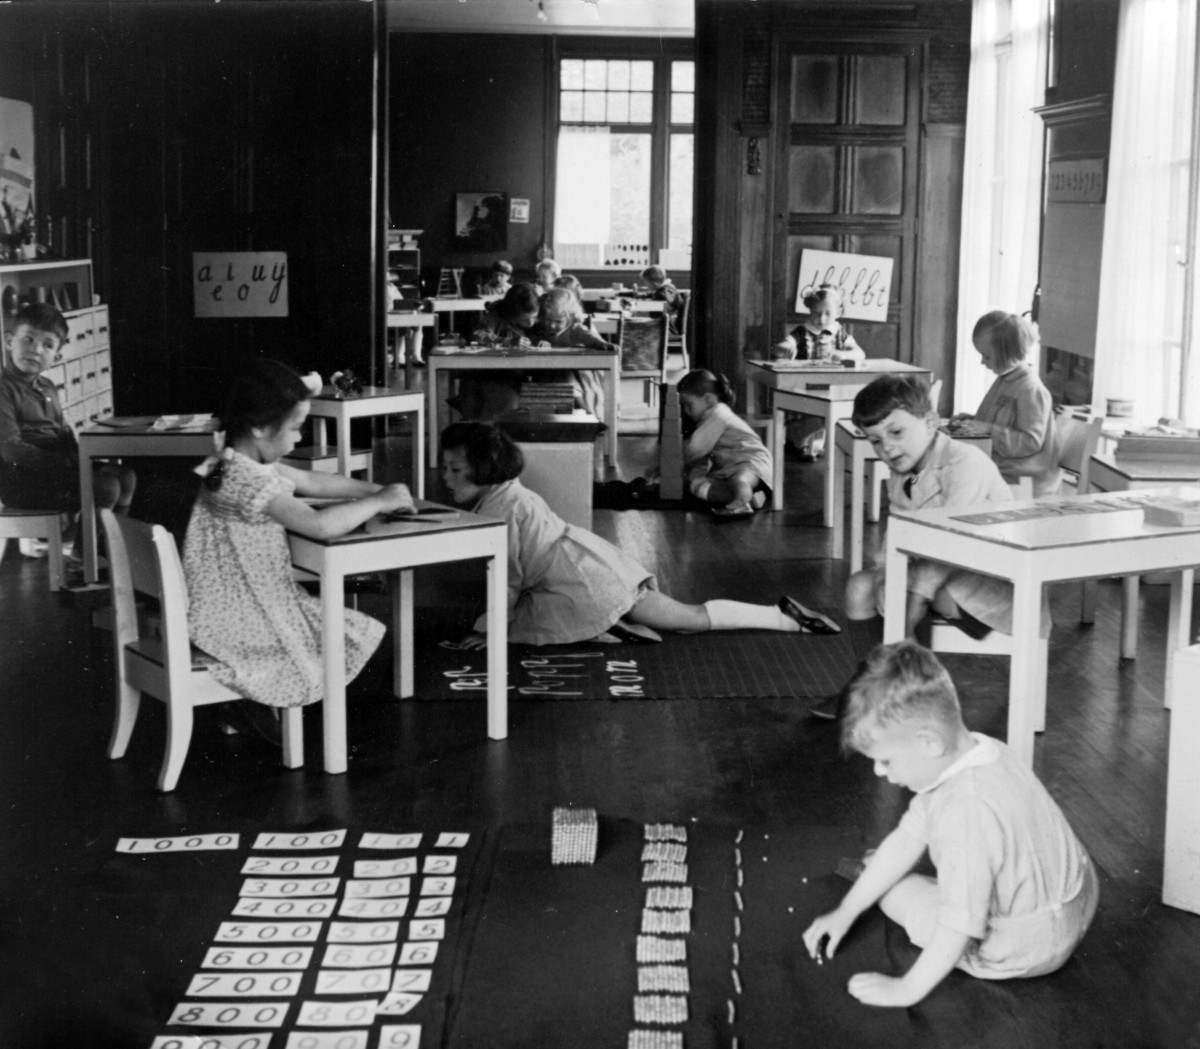 Maria Montessori advocated for classroom furniture to fit the size of her pupils.